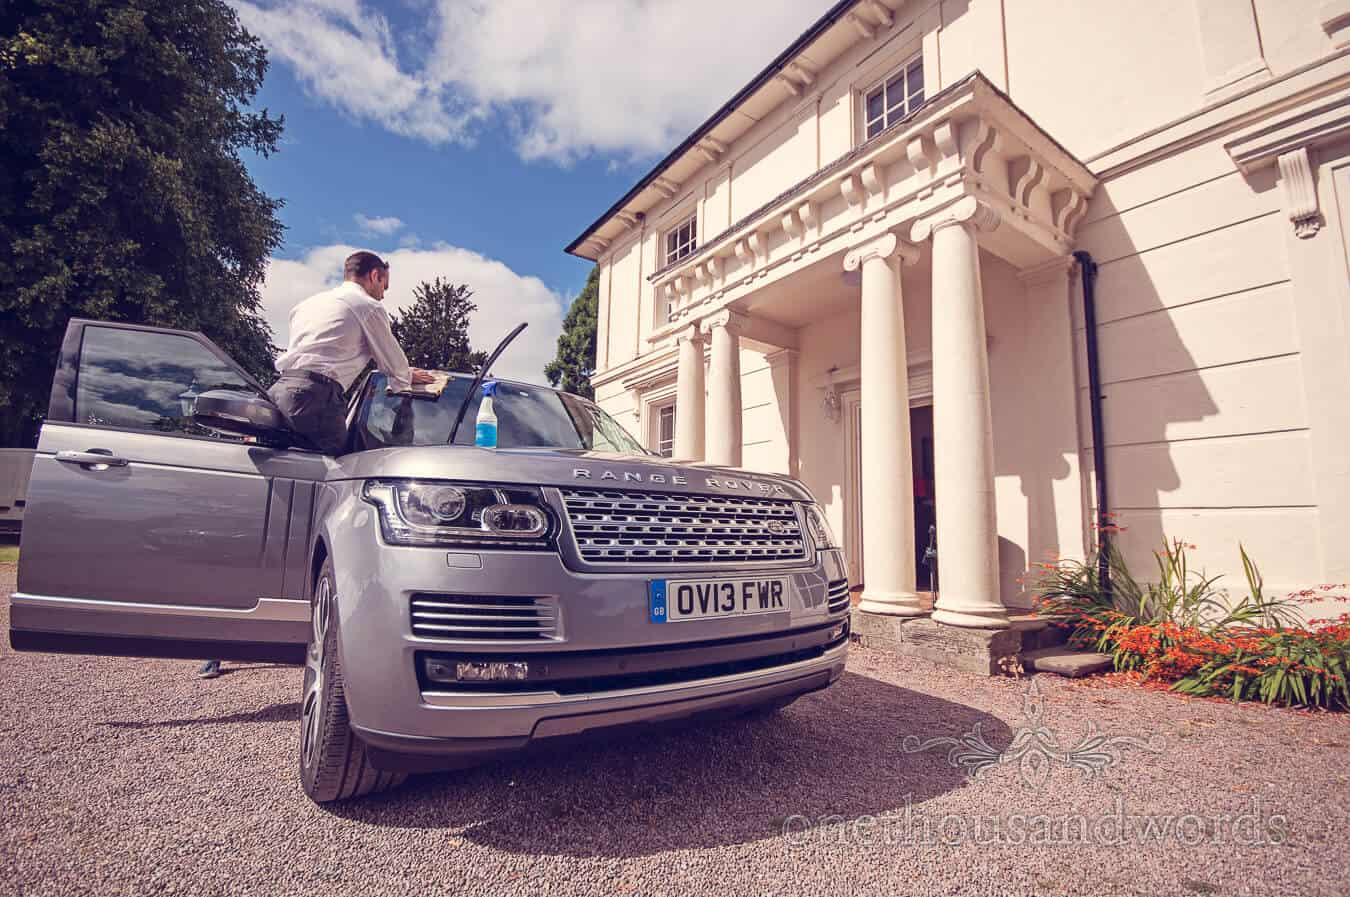 Weddign range rover being cleaned on Countryside Wedding morning